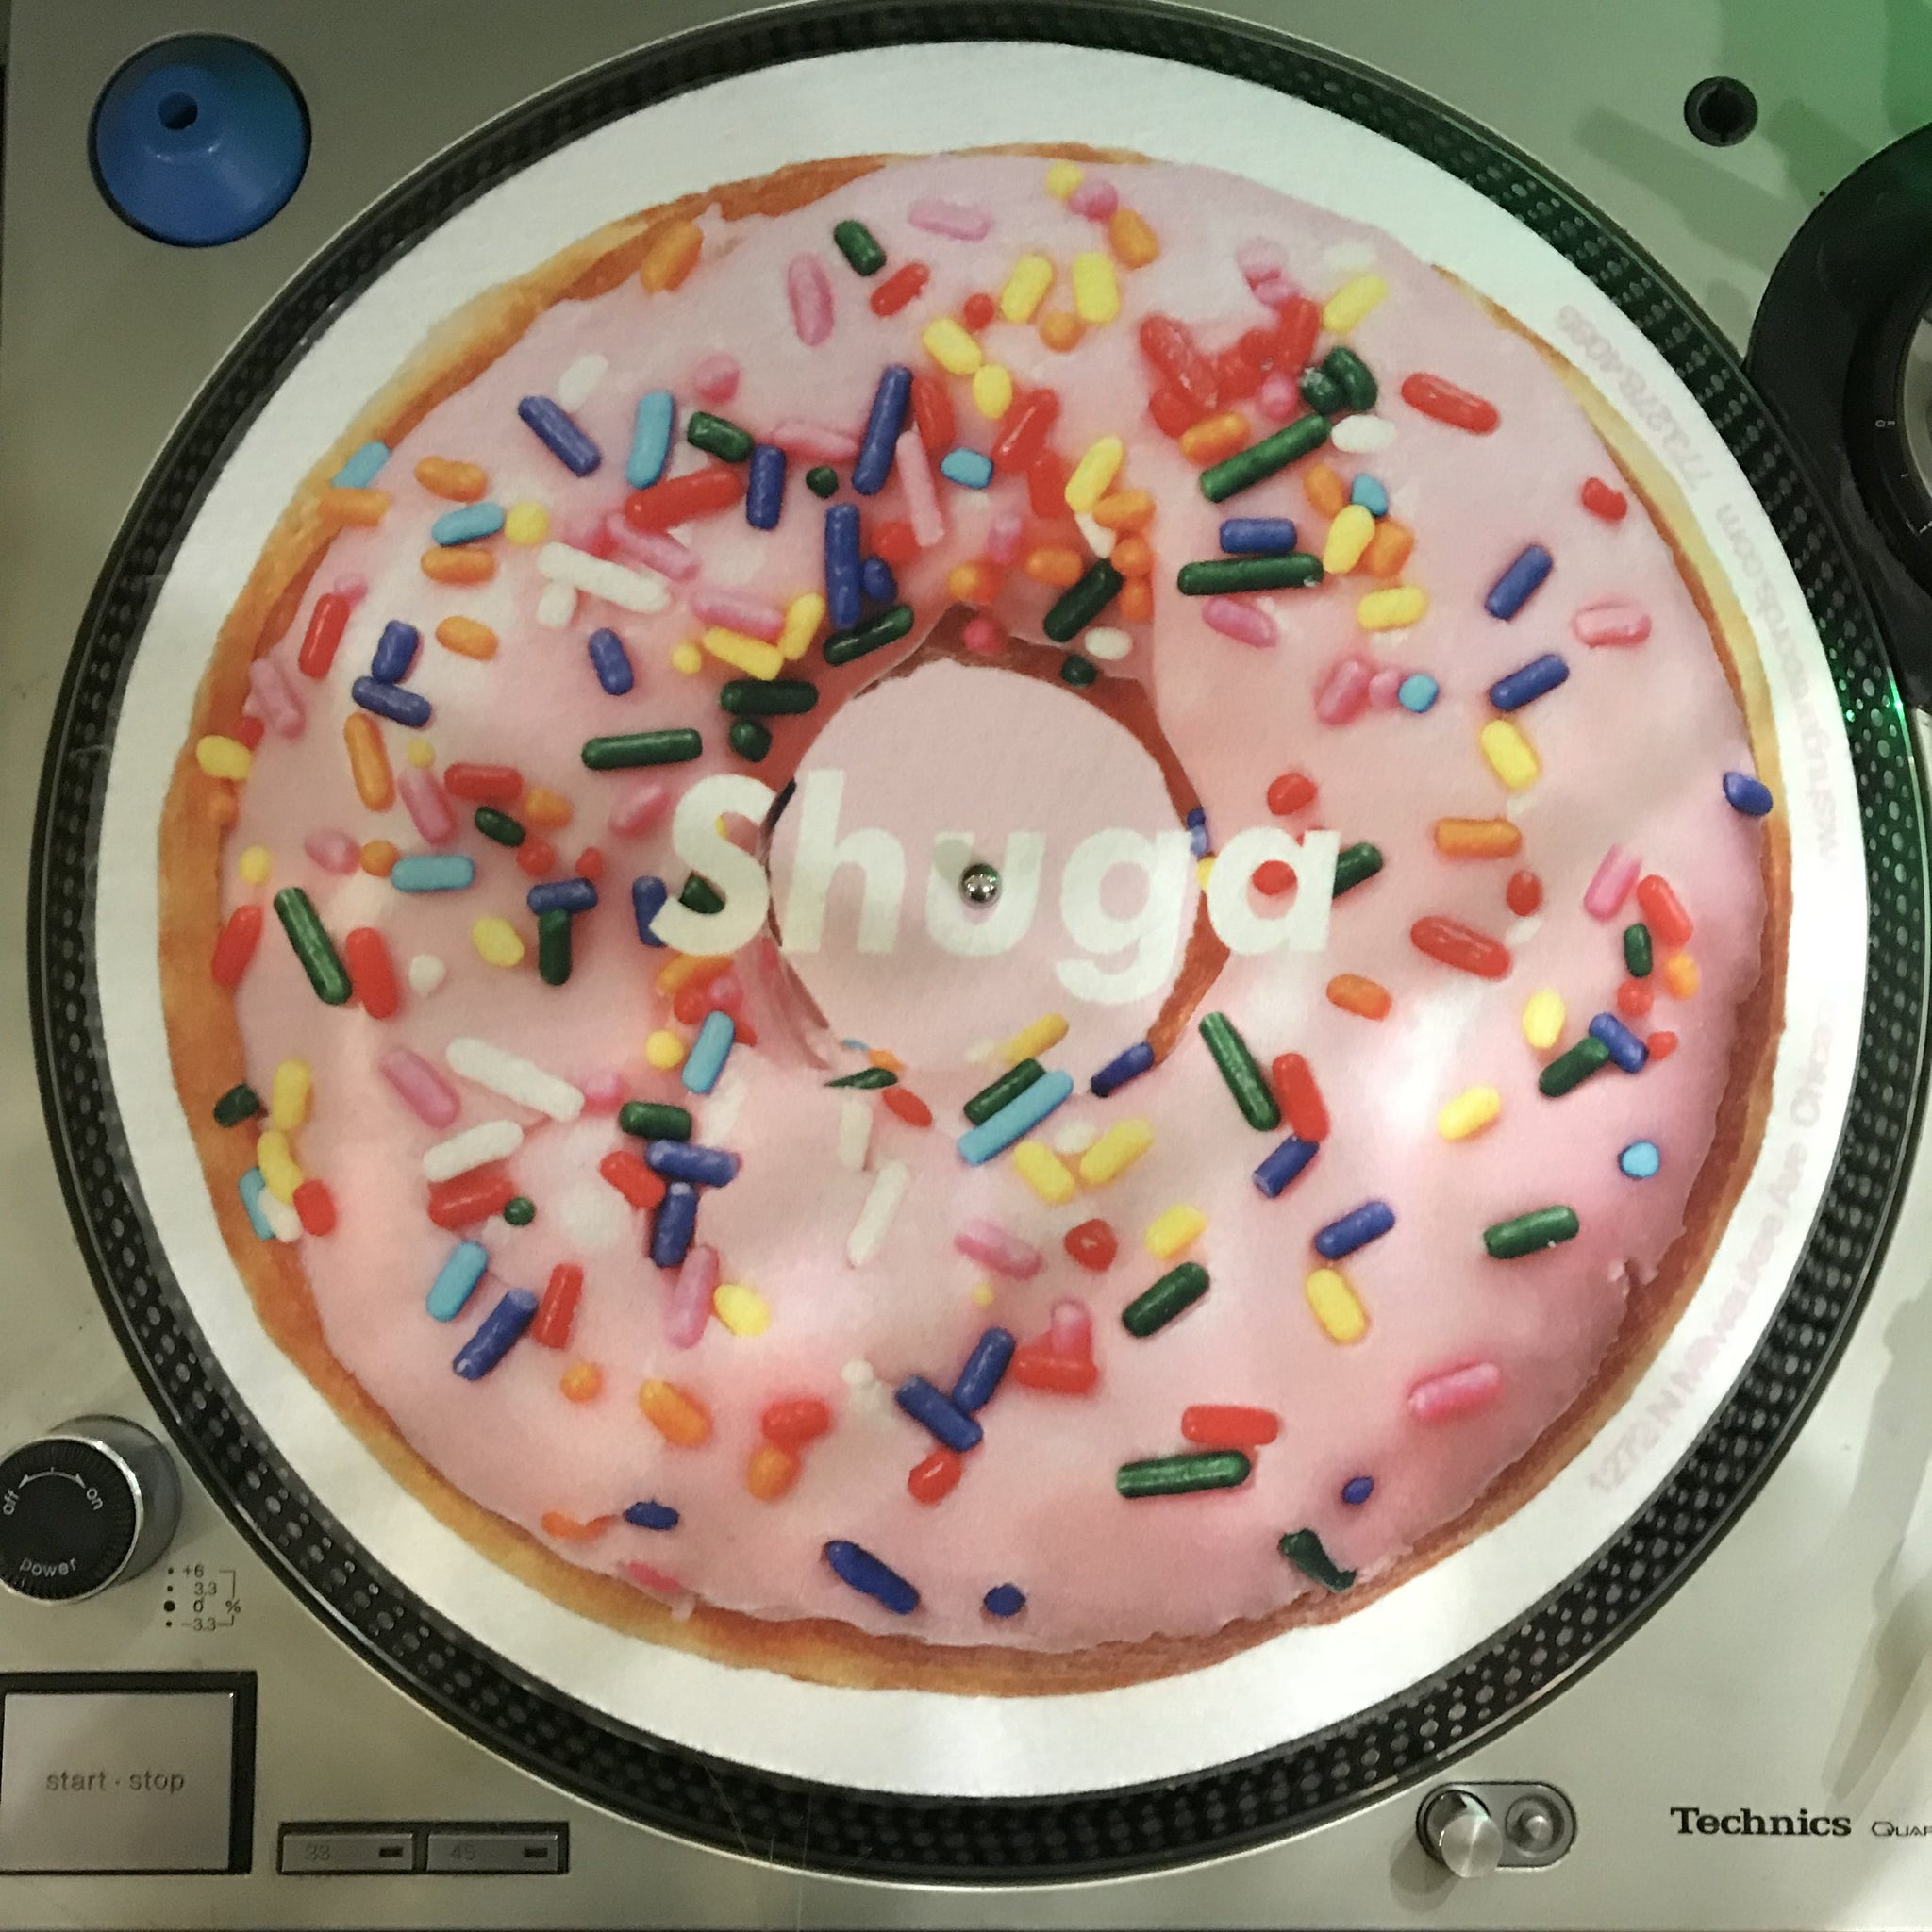 Shuga Records 2018 Limited Edition Vinyl Record Slipmat Pink Donut